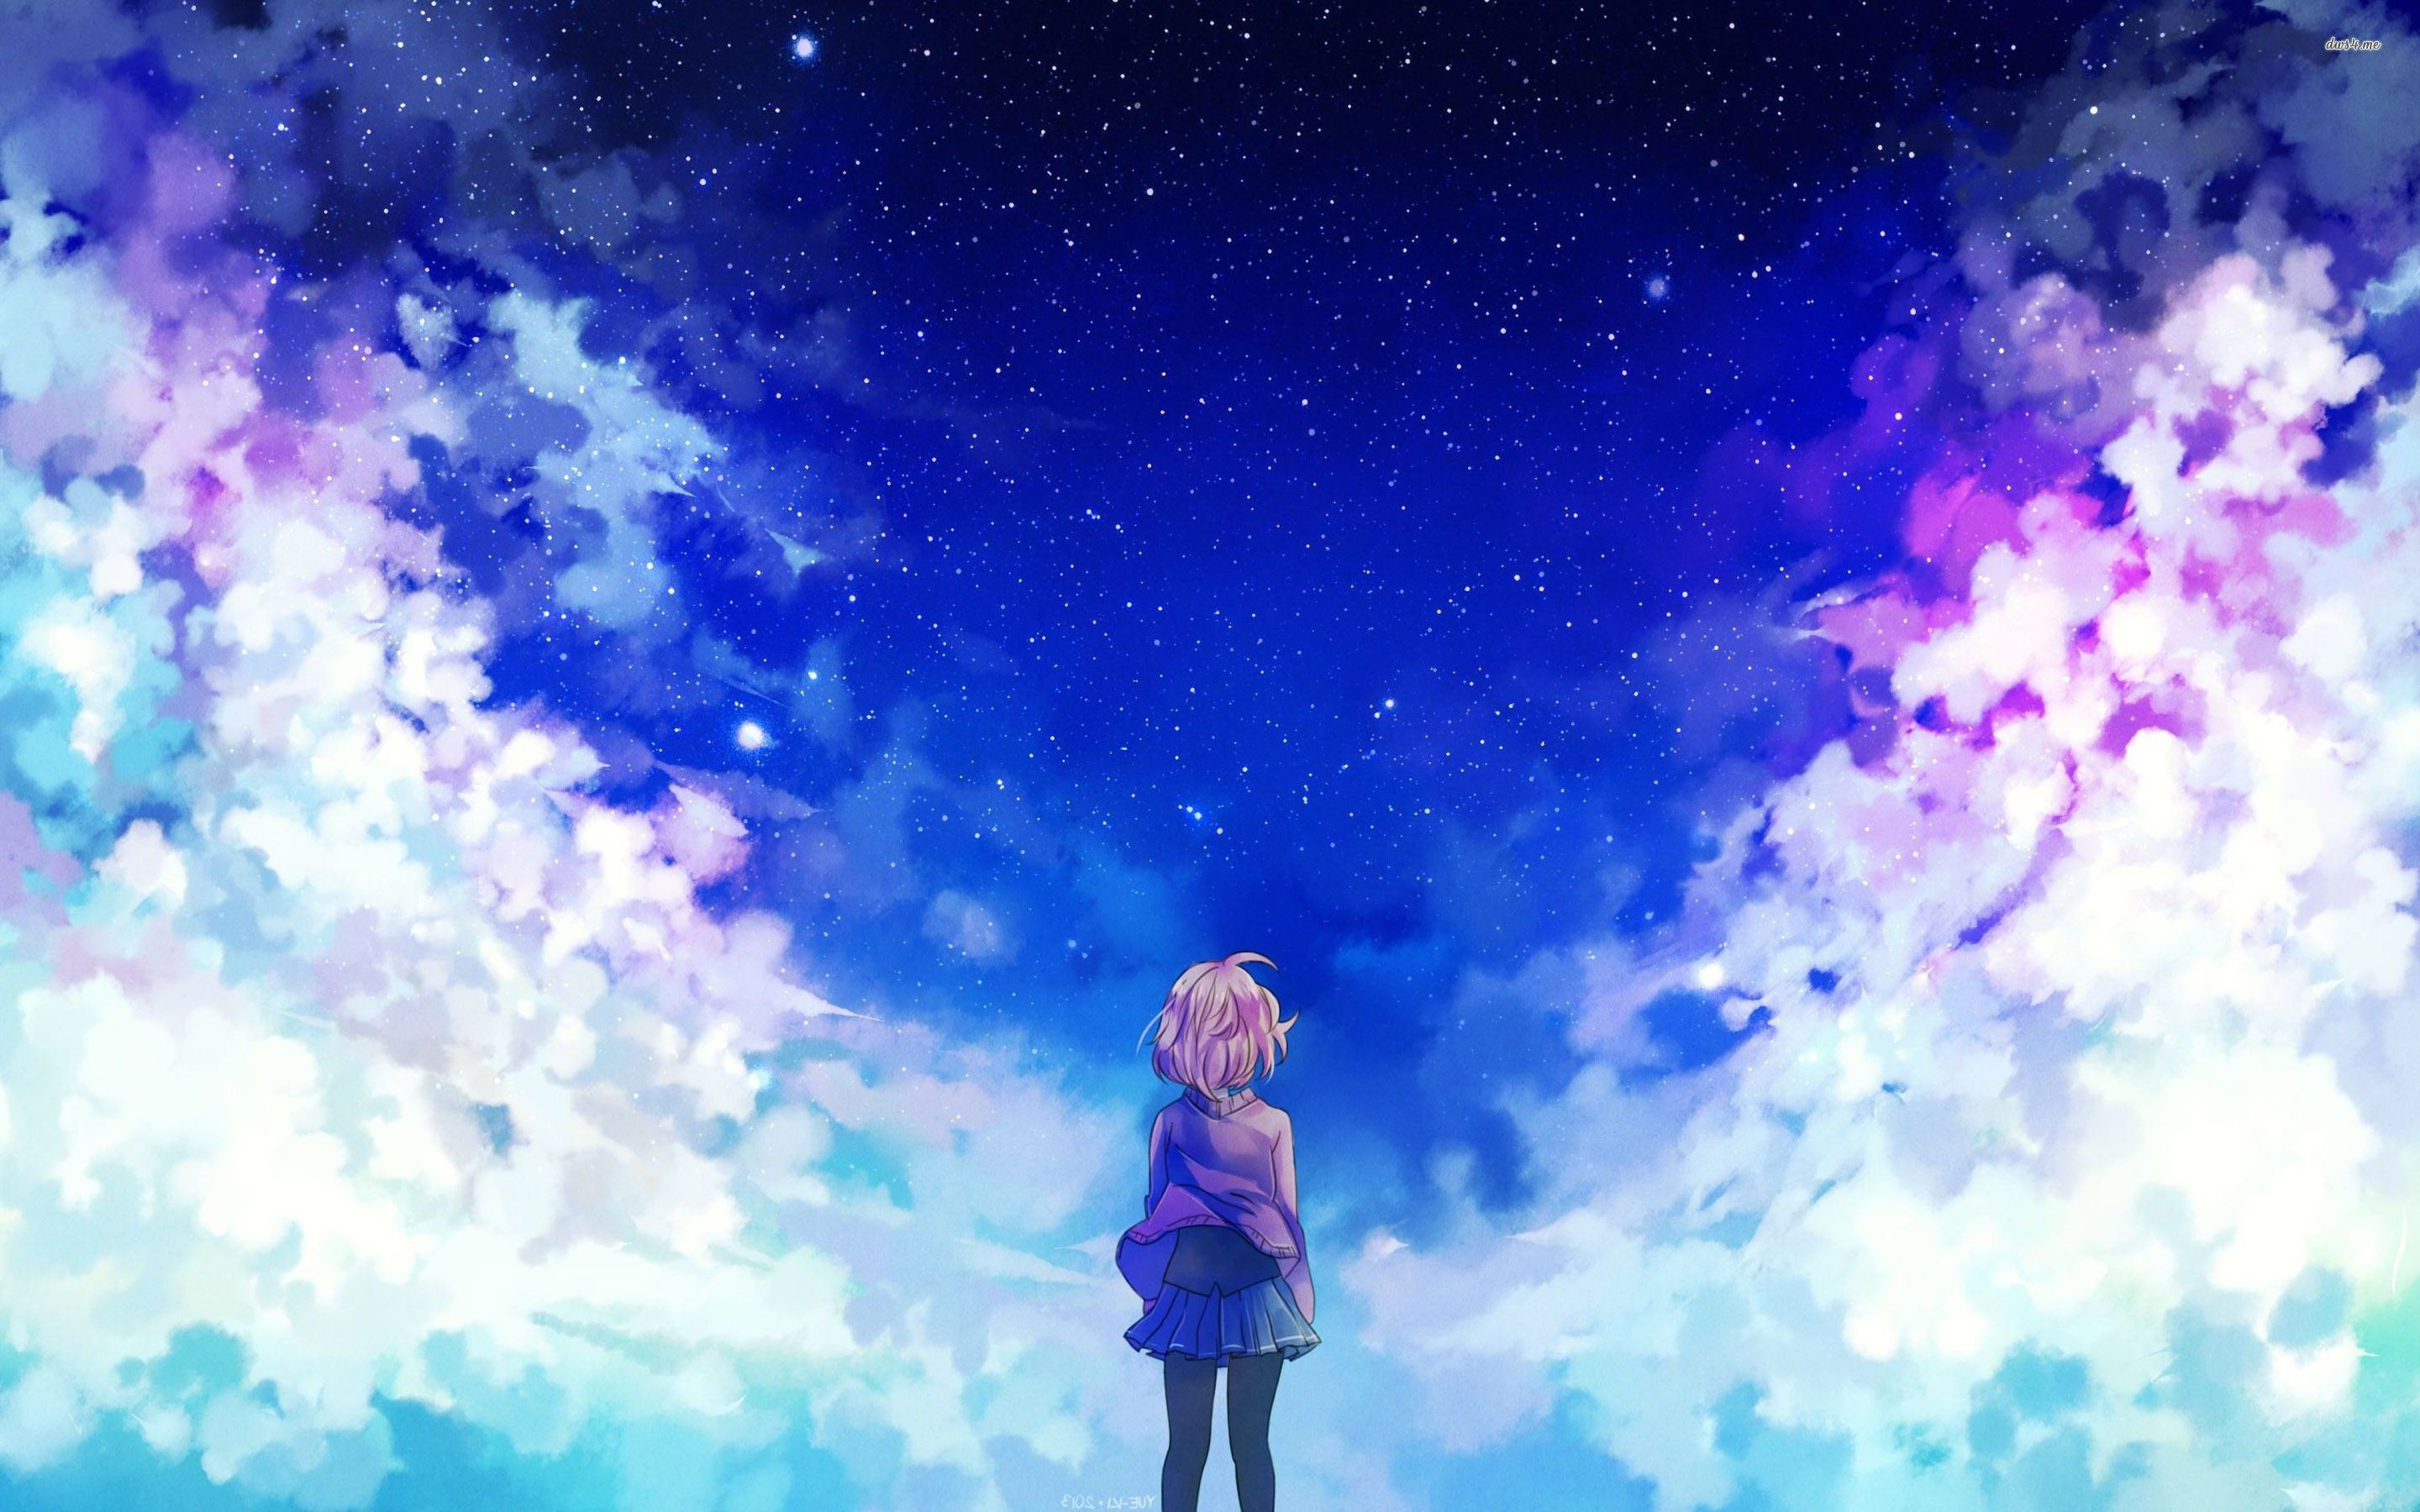 2880x1800 Beyond the Boundary wallpaper Anime wallpapers